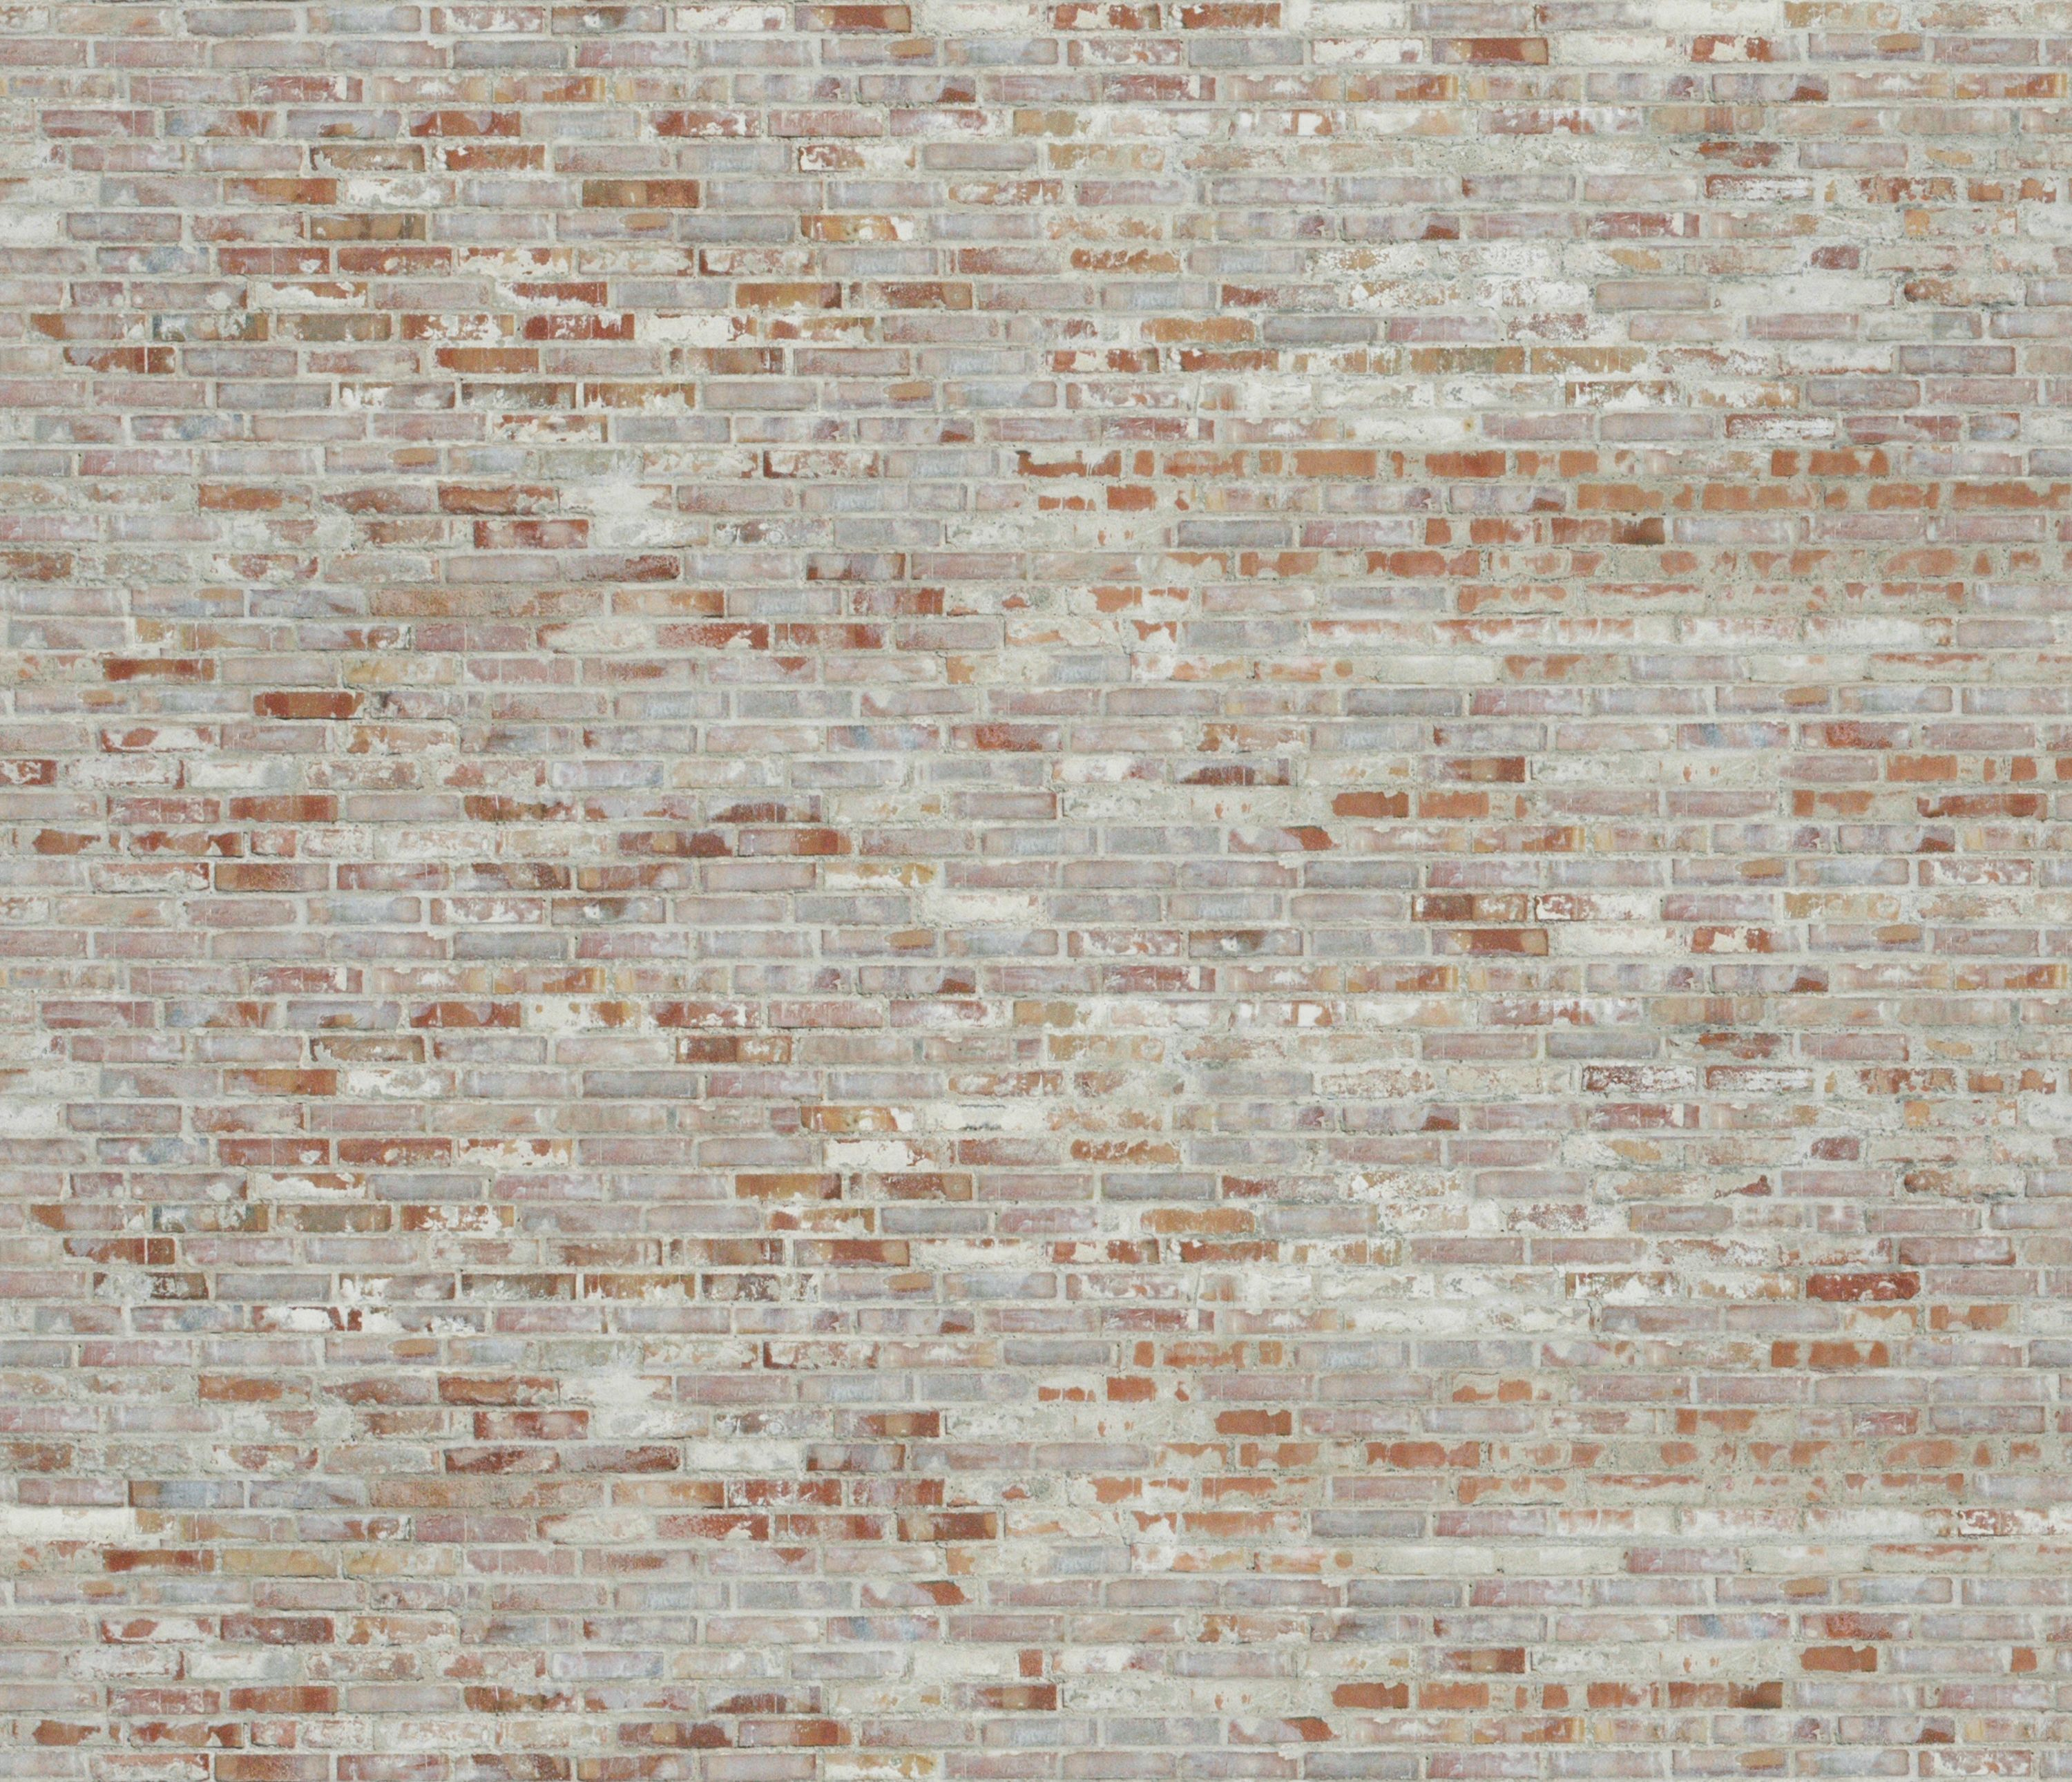 M s tama os   free seamless texture recycled brick  seier seier   Flickr. M s tama os   free seamless texture recycled brick  seier seier